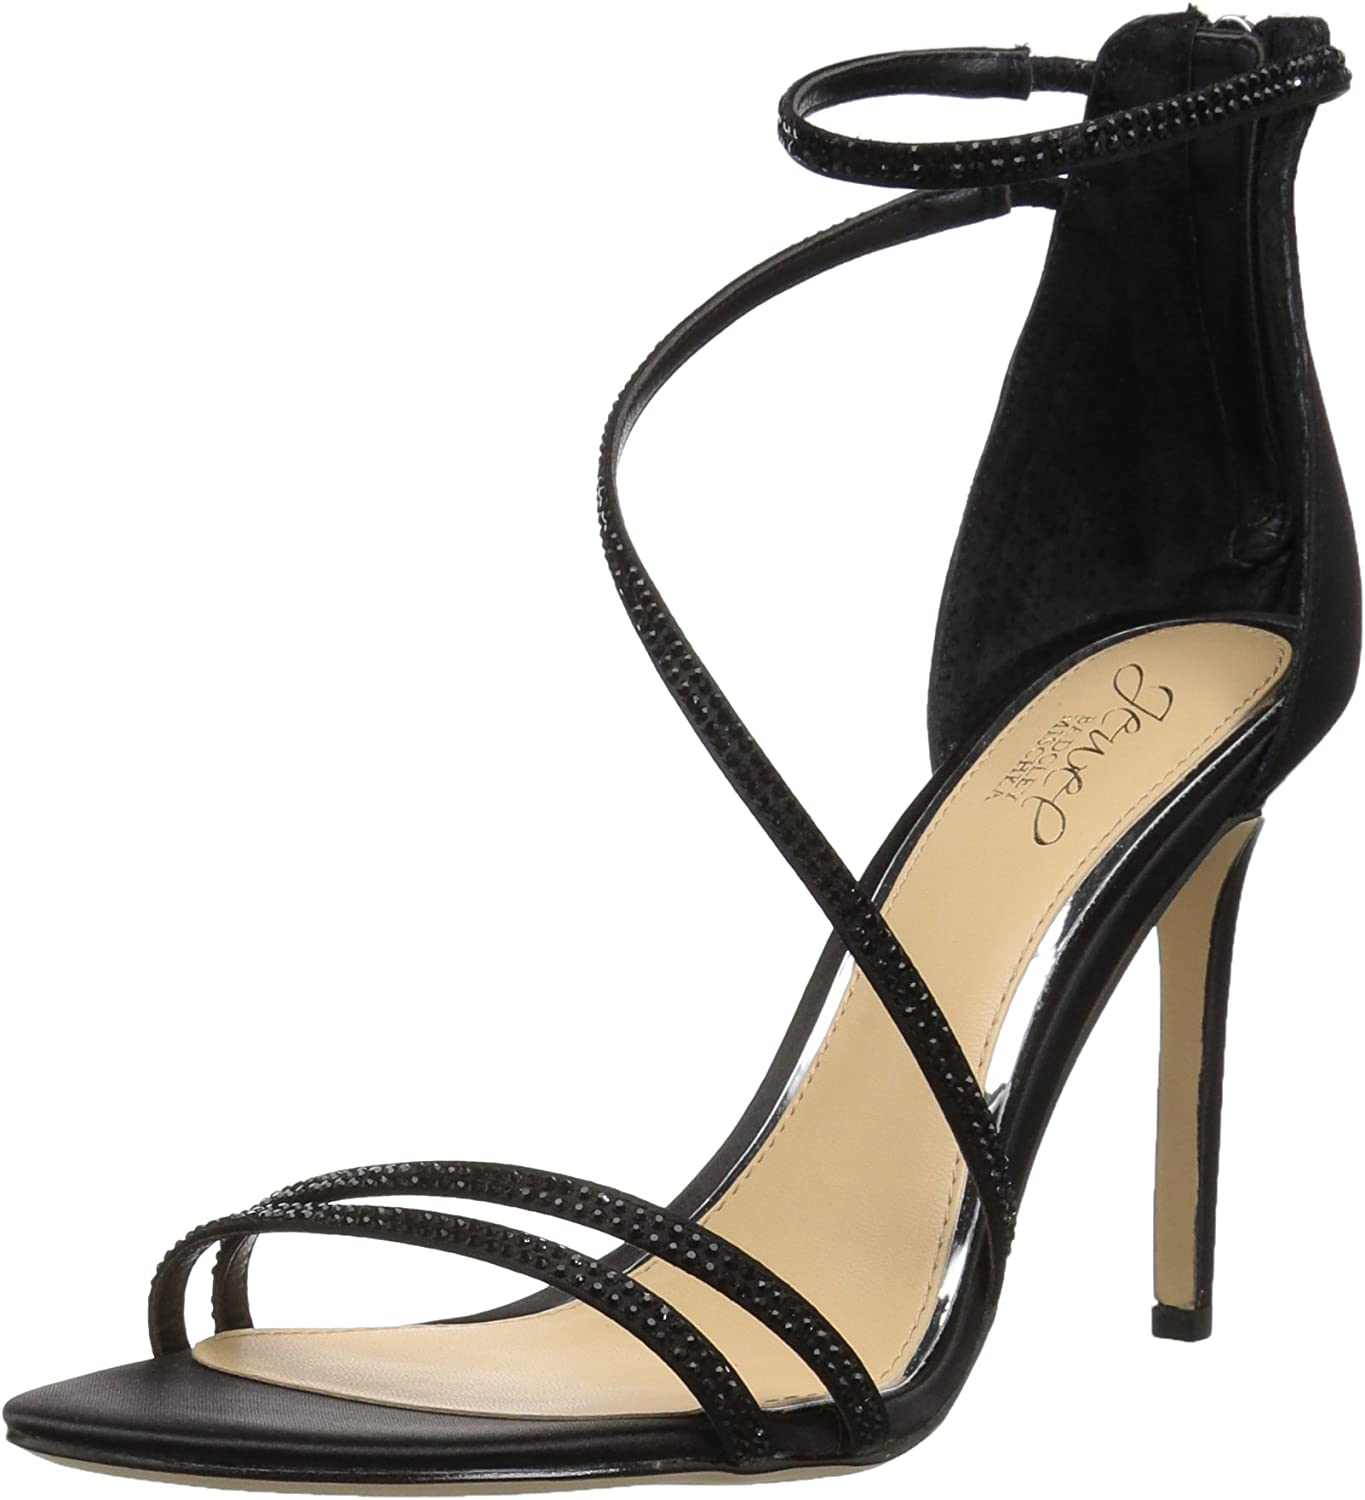 Badgley Mischka Womens Gail Heeled Sandal